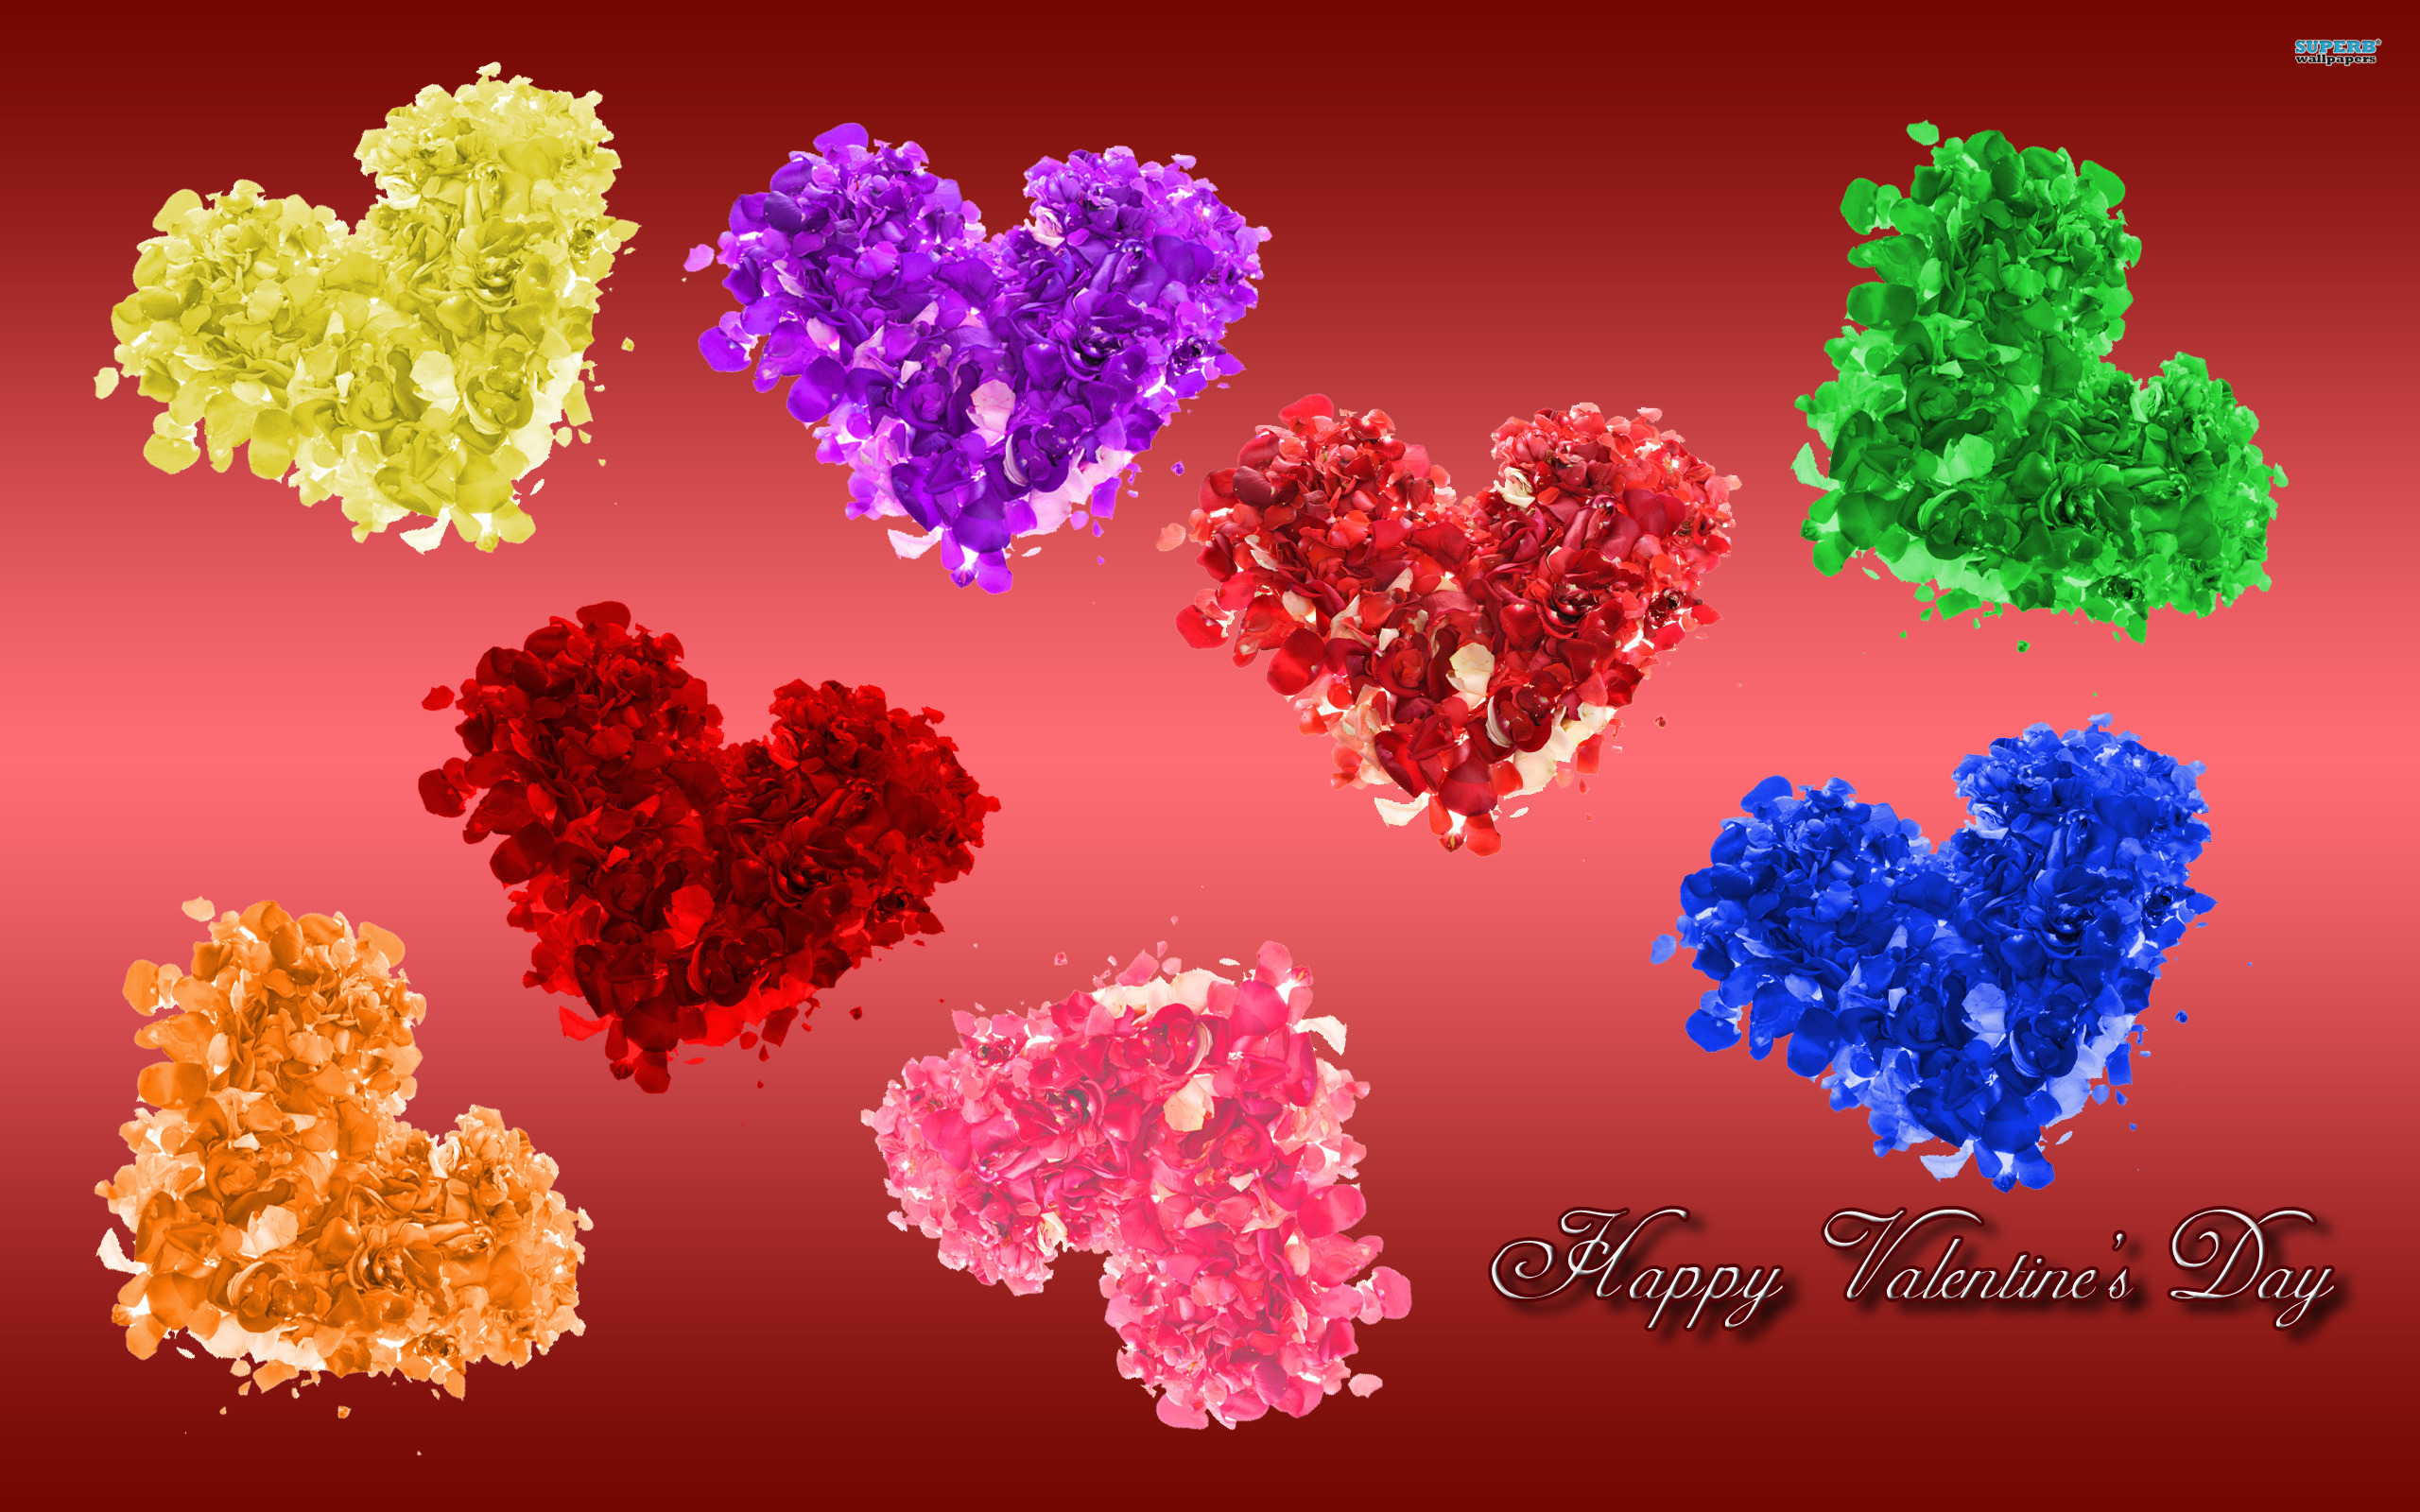 Happy Valentine Days Wallpaper PC